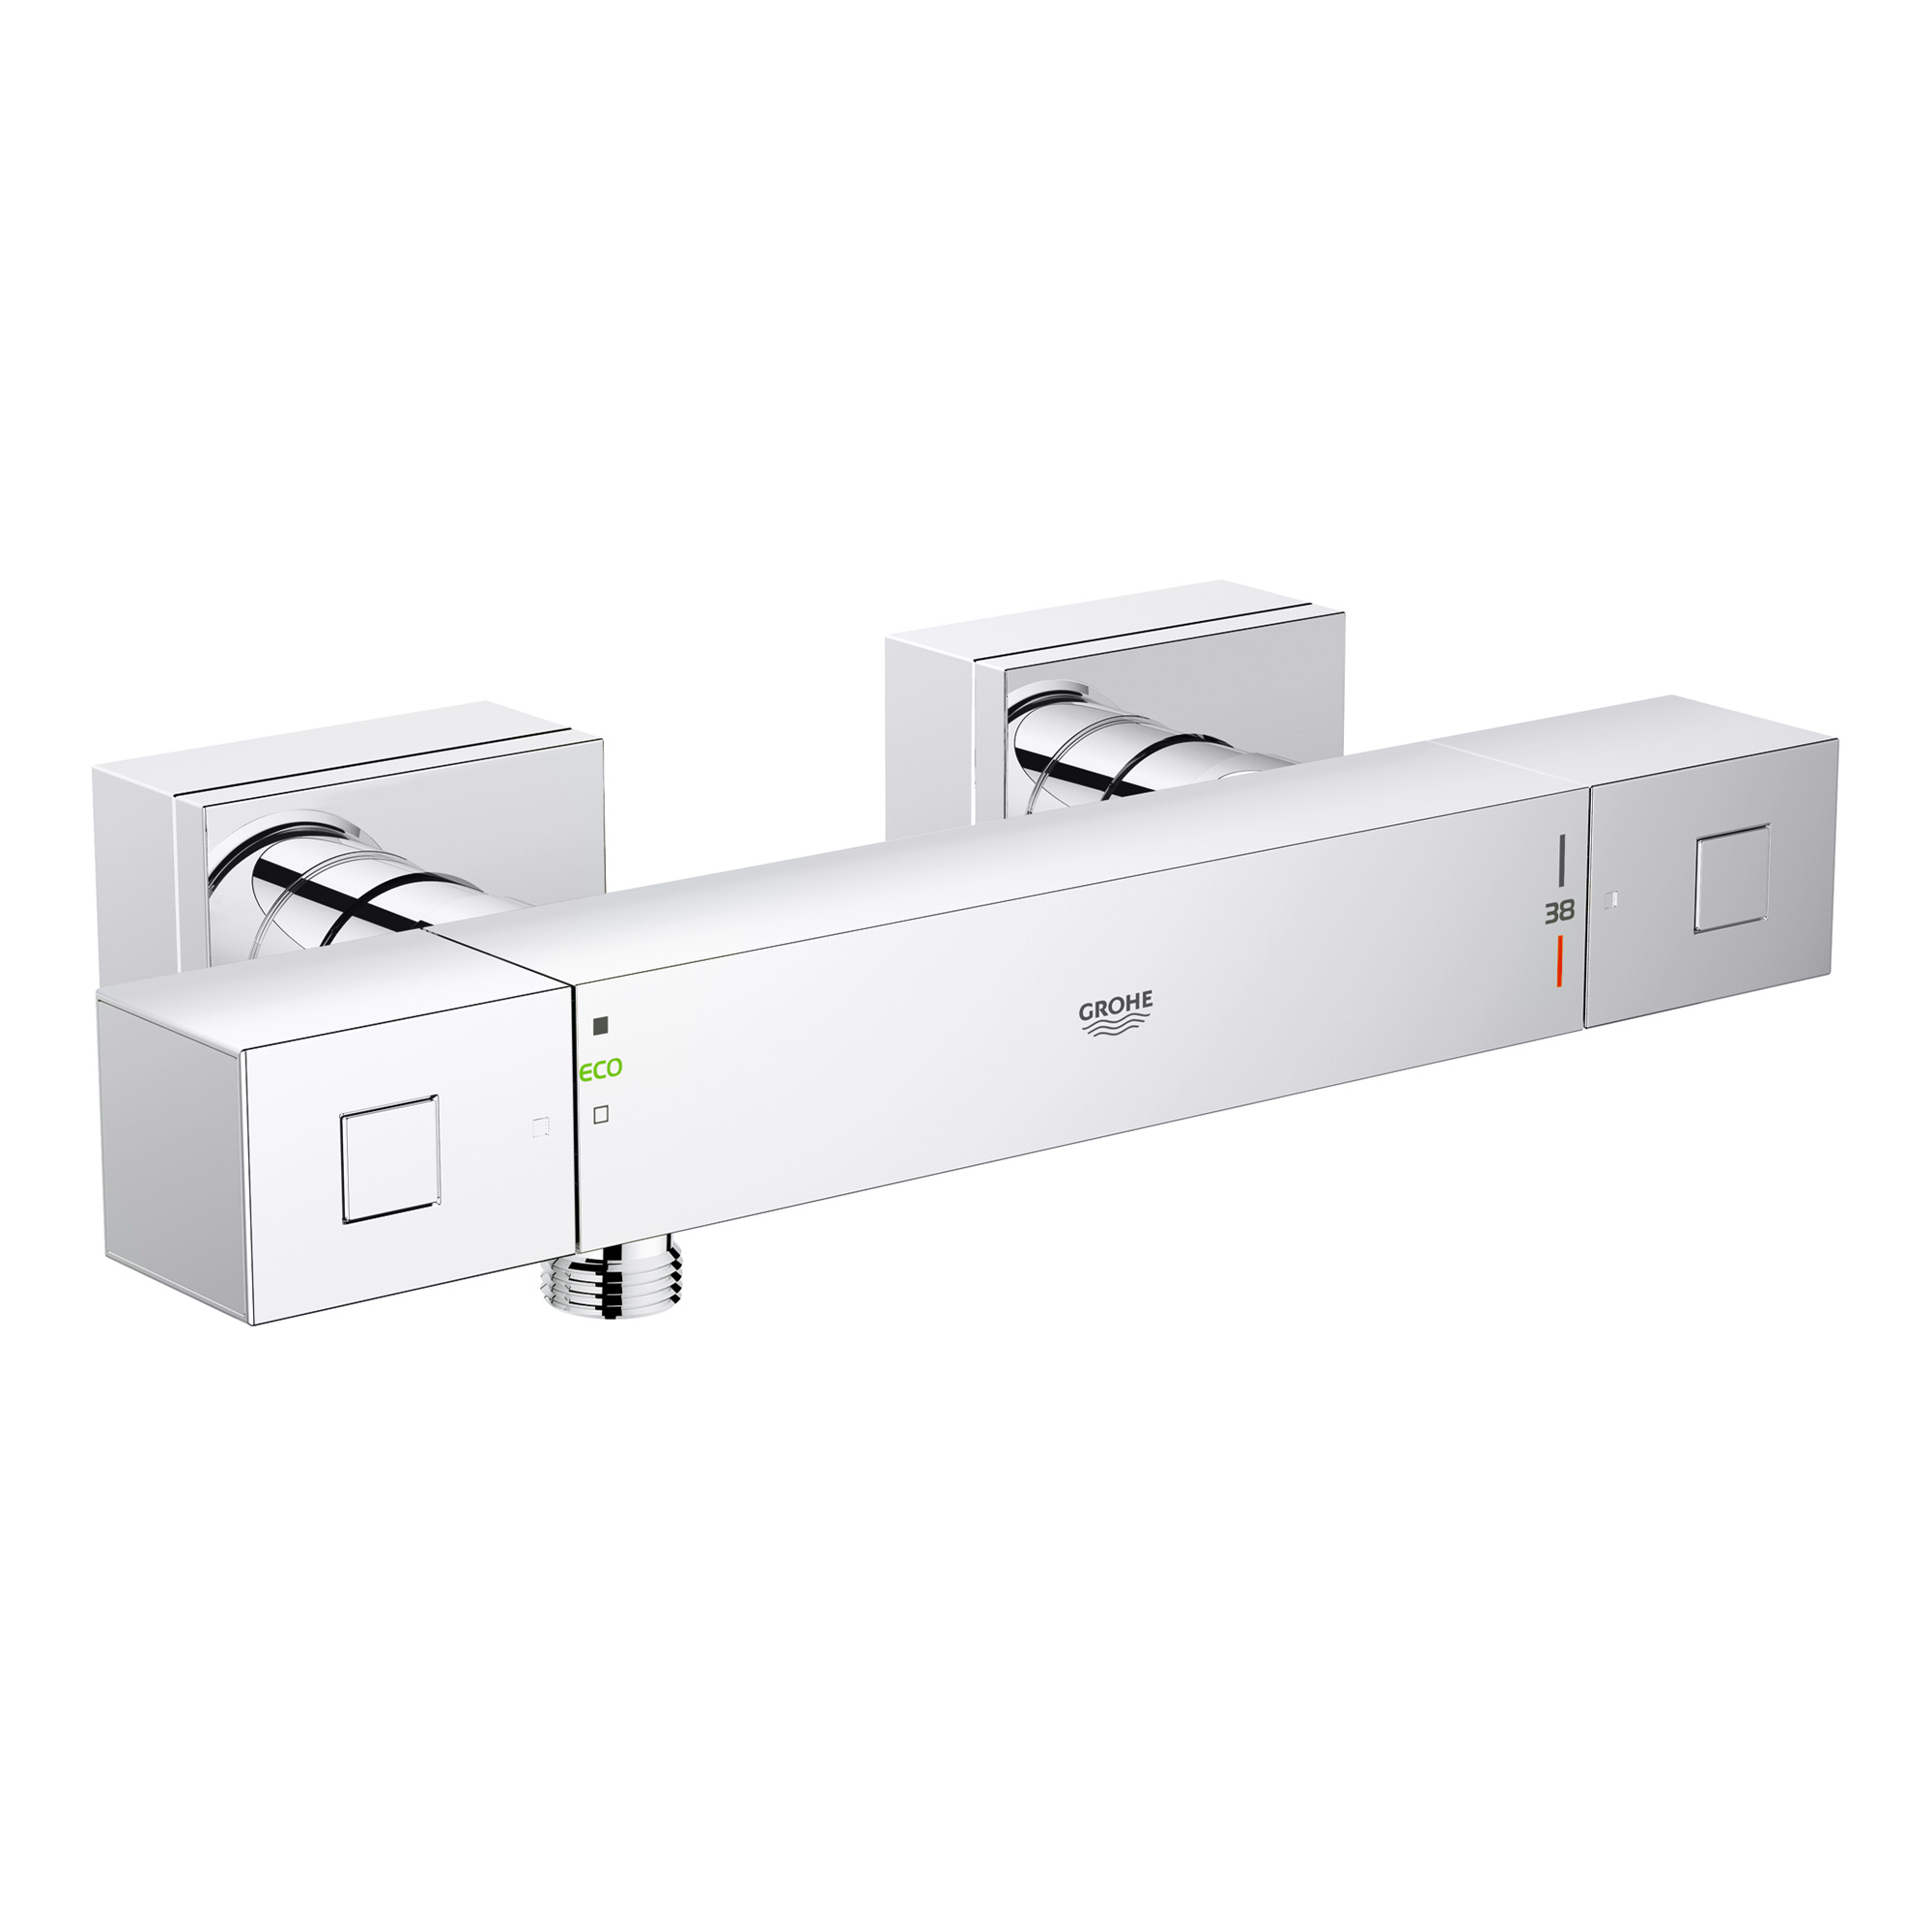 grohe grohtherm cube thermostat brausebatterie dn 15 34488000 reuter onlineshop. Black Bedroom Furniture Sets. Home Design Ideas